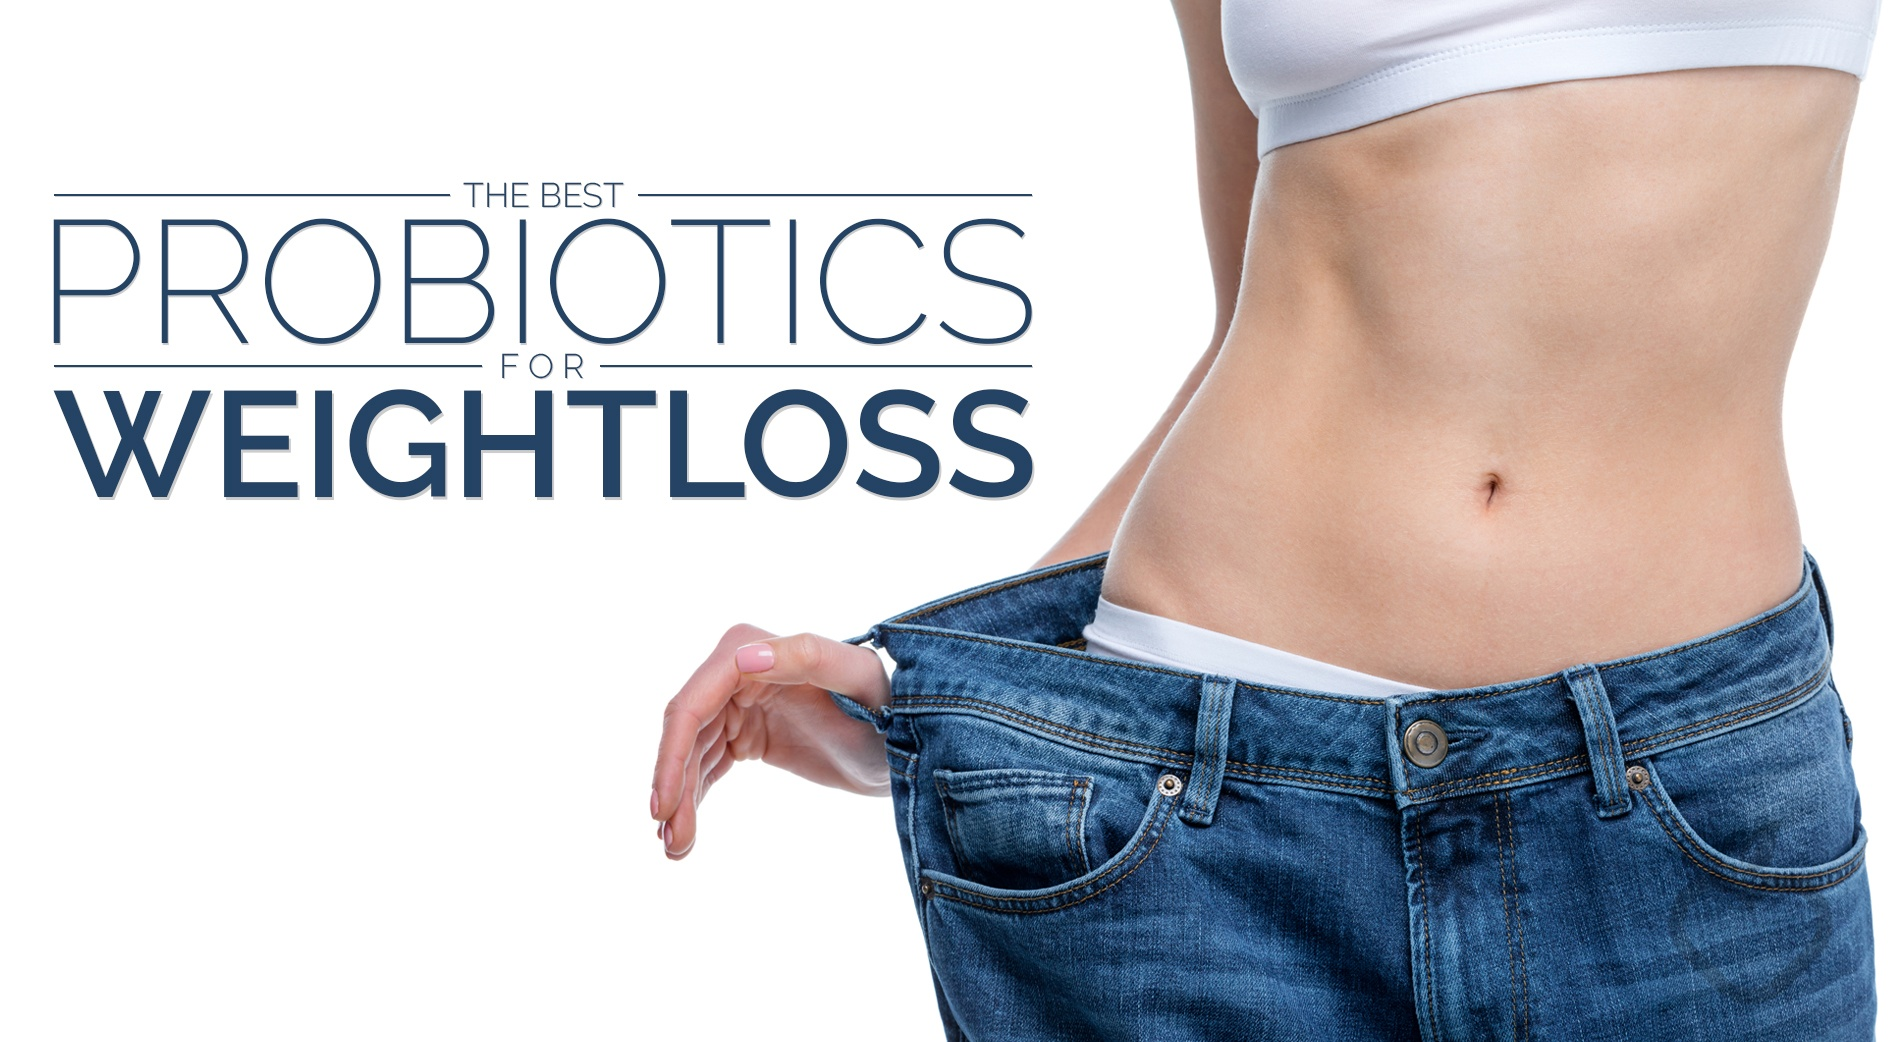 Weightloss Image Design 1 - The Best Probiotics For Weight Loss